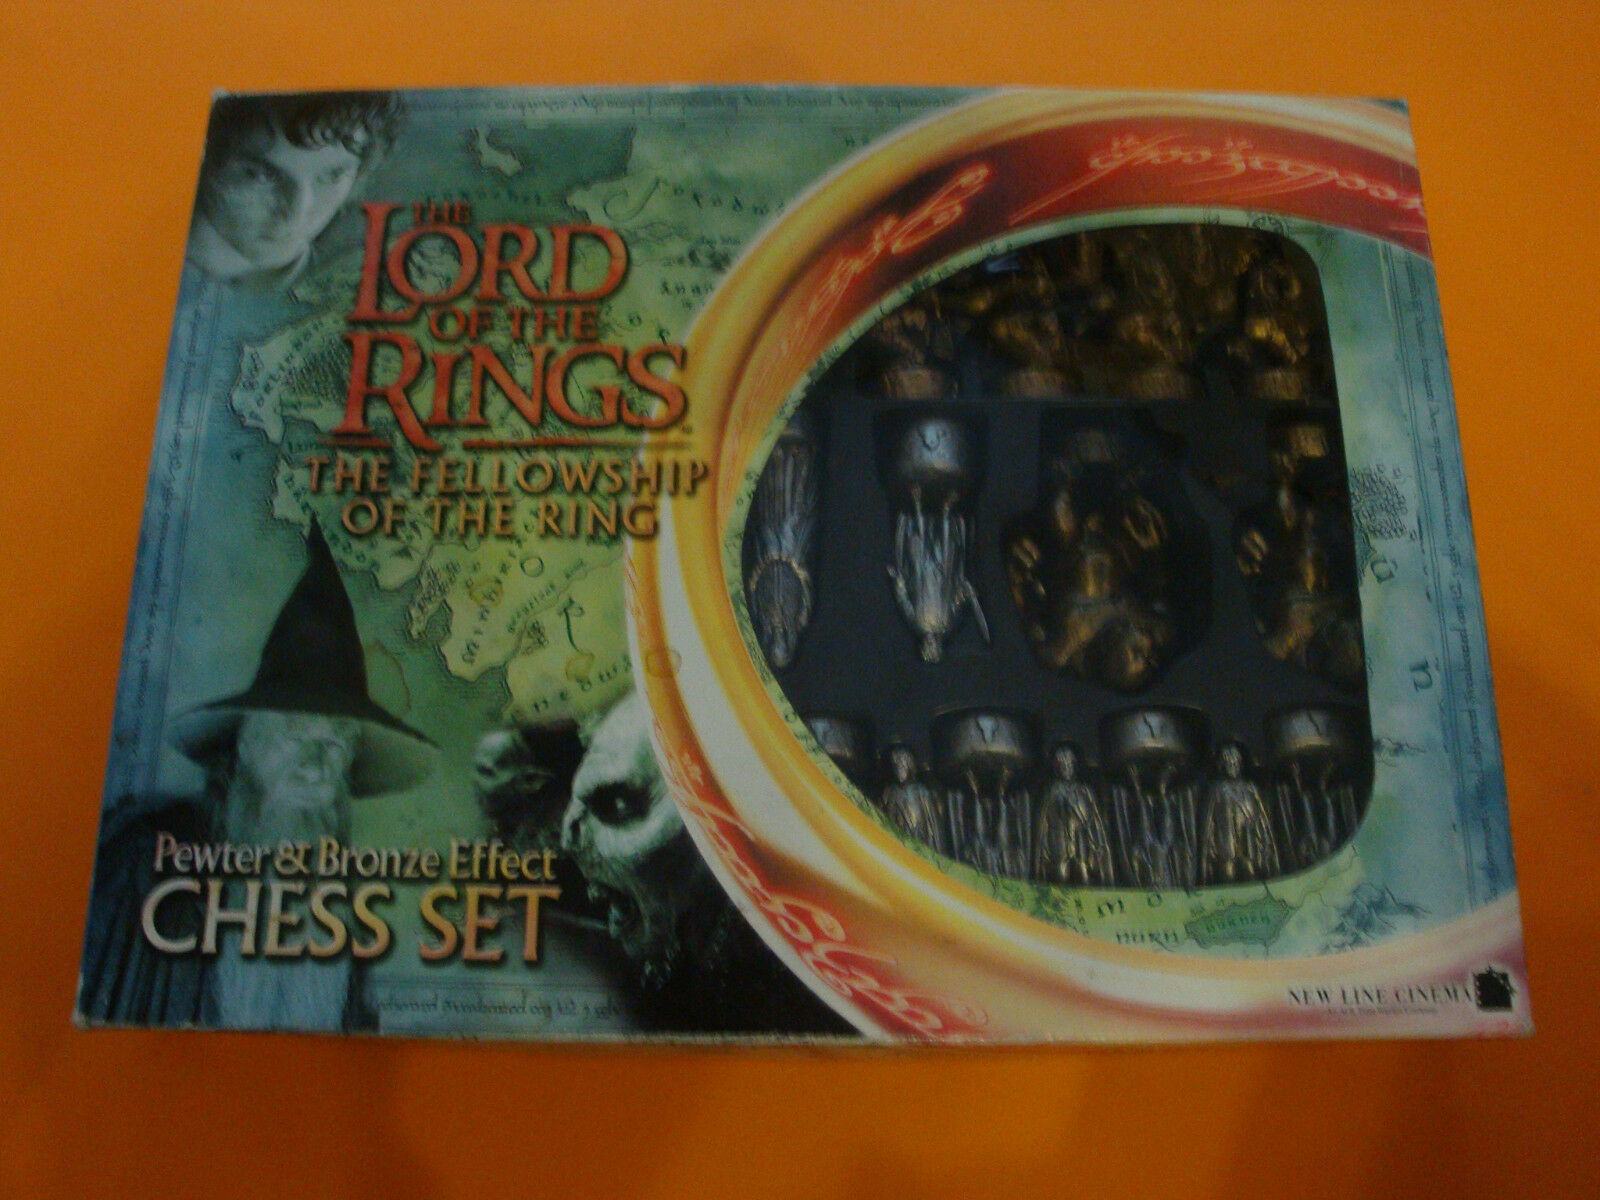 The Lord of the Rings-The felloship of the Ring Chess Set